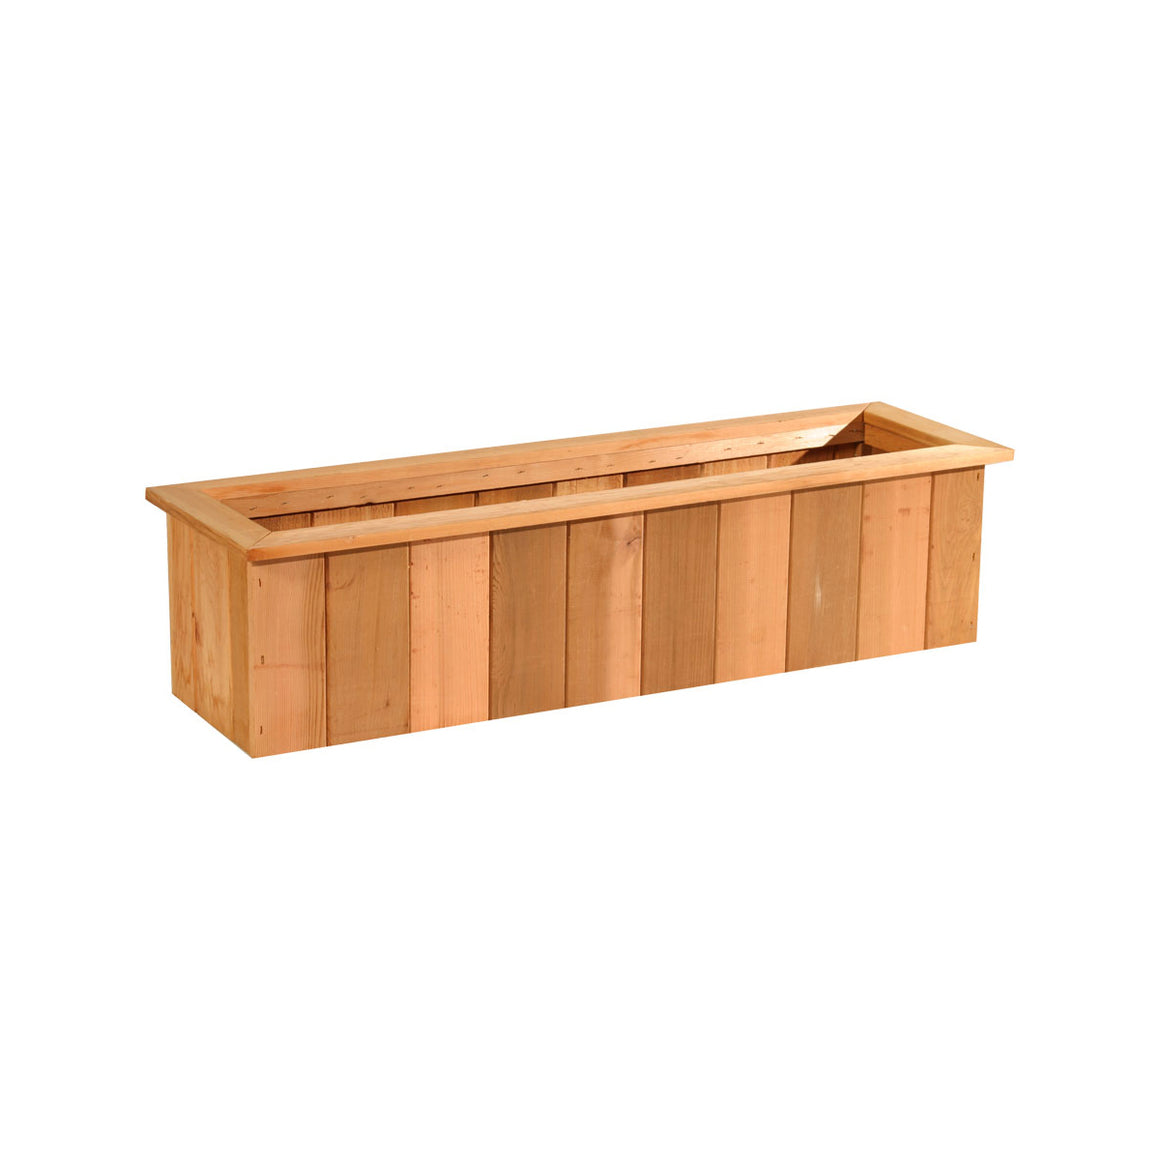 Cedar Trough Planter